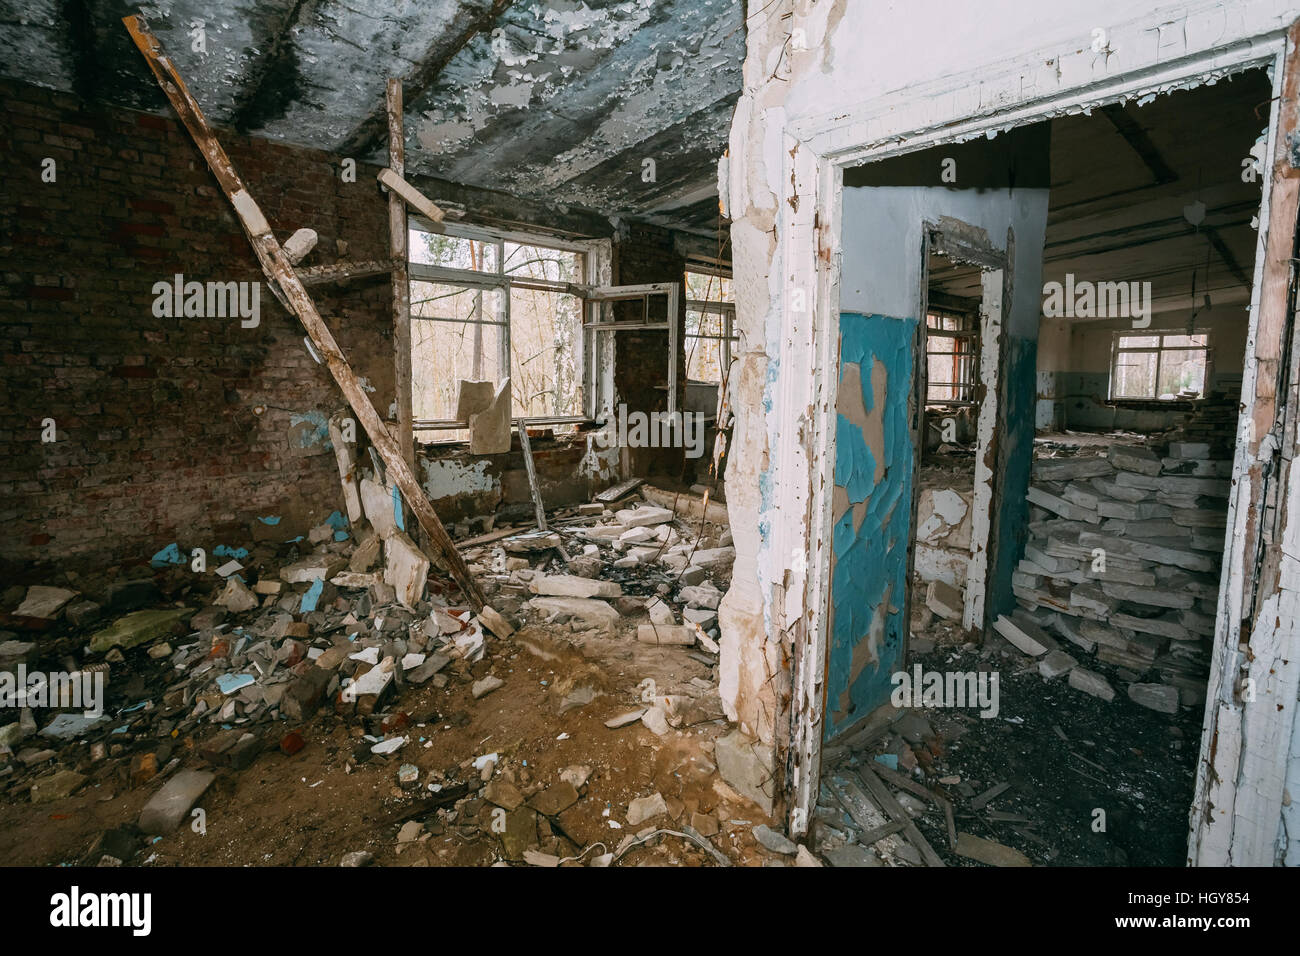 Abandoned Building Interior In Chernobyl Zone. Chornobyl Disasters - Stock Image